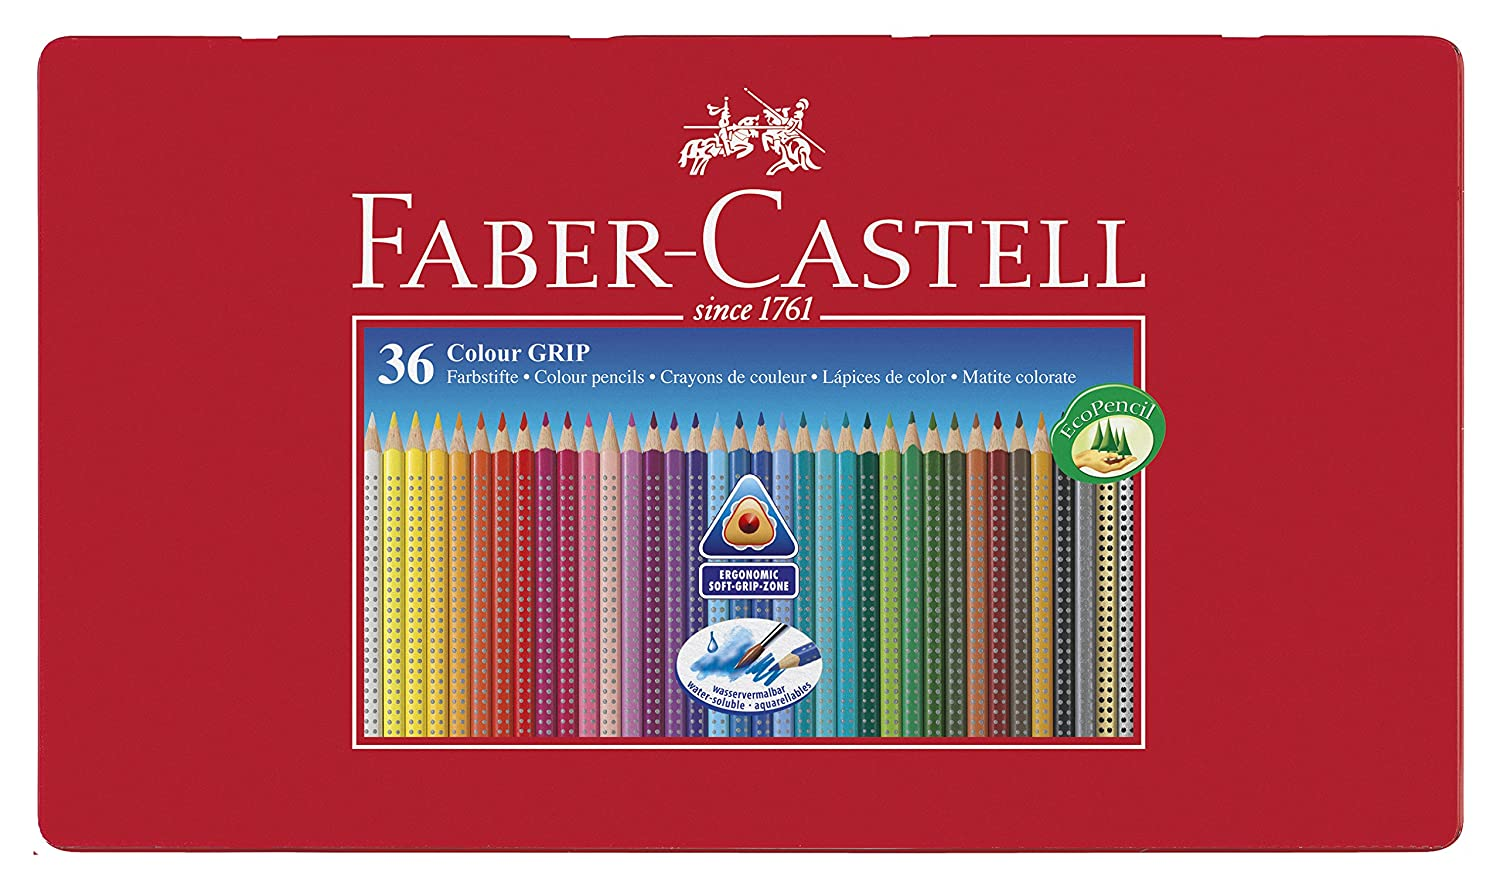 Faber Castell Estuche de metal con ecolápices triangulares de colores Grip acuarelables